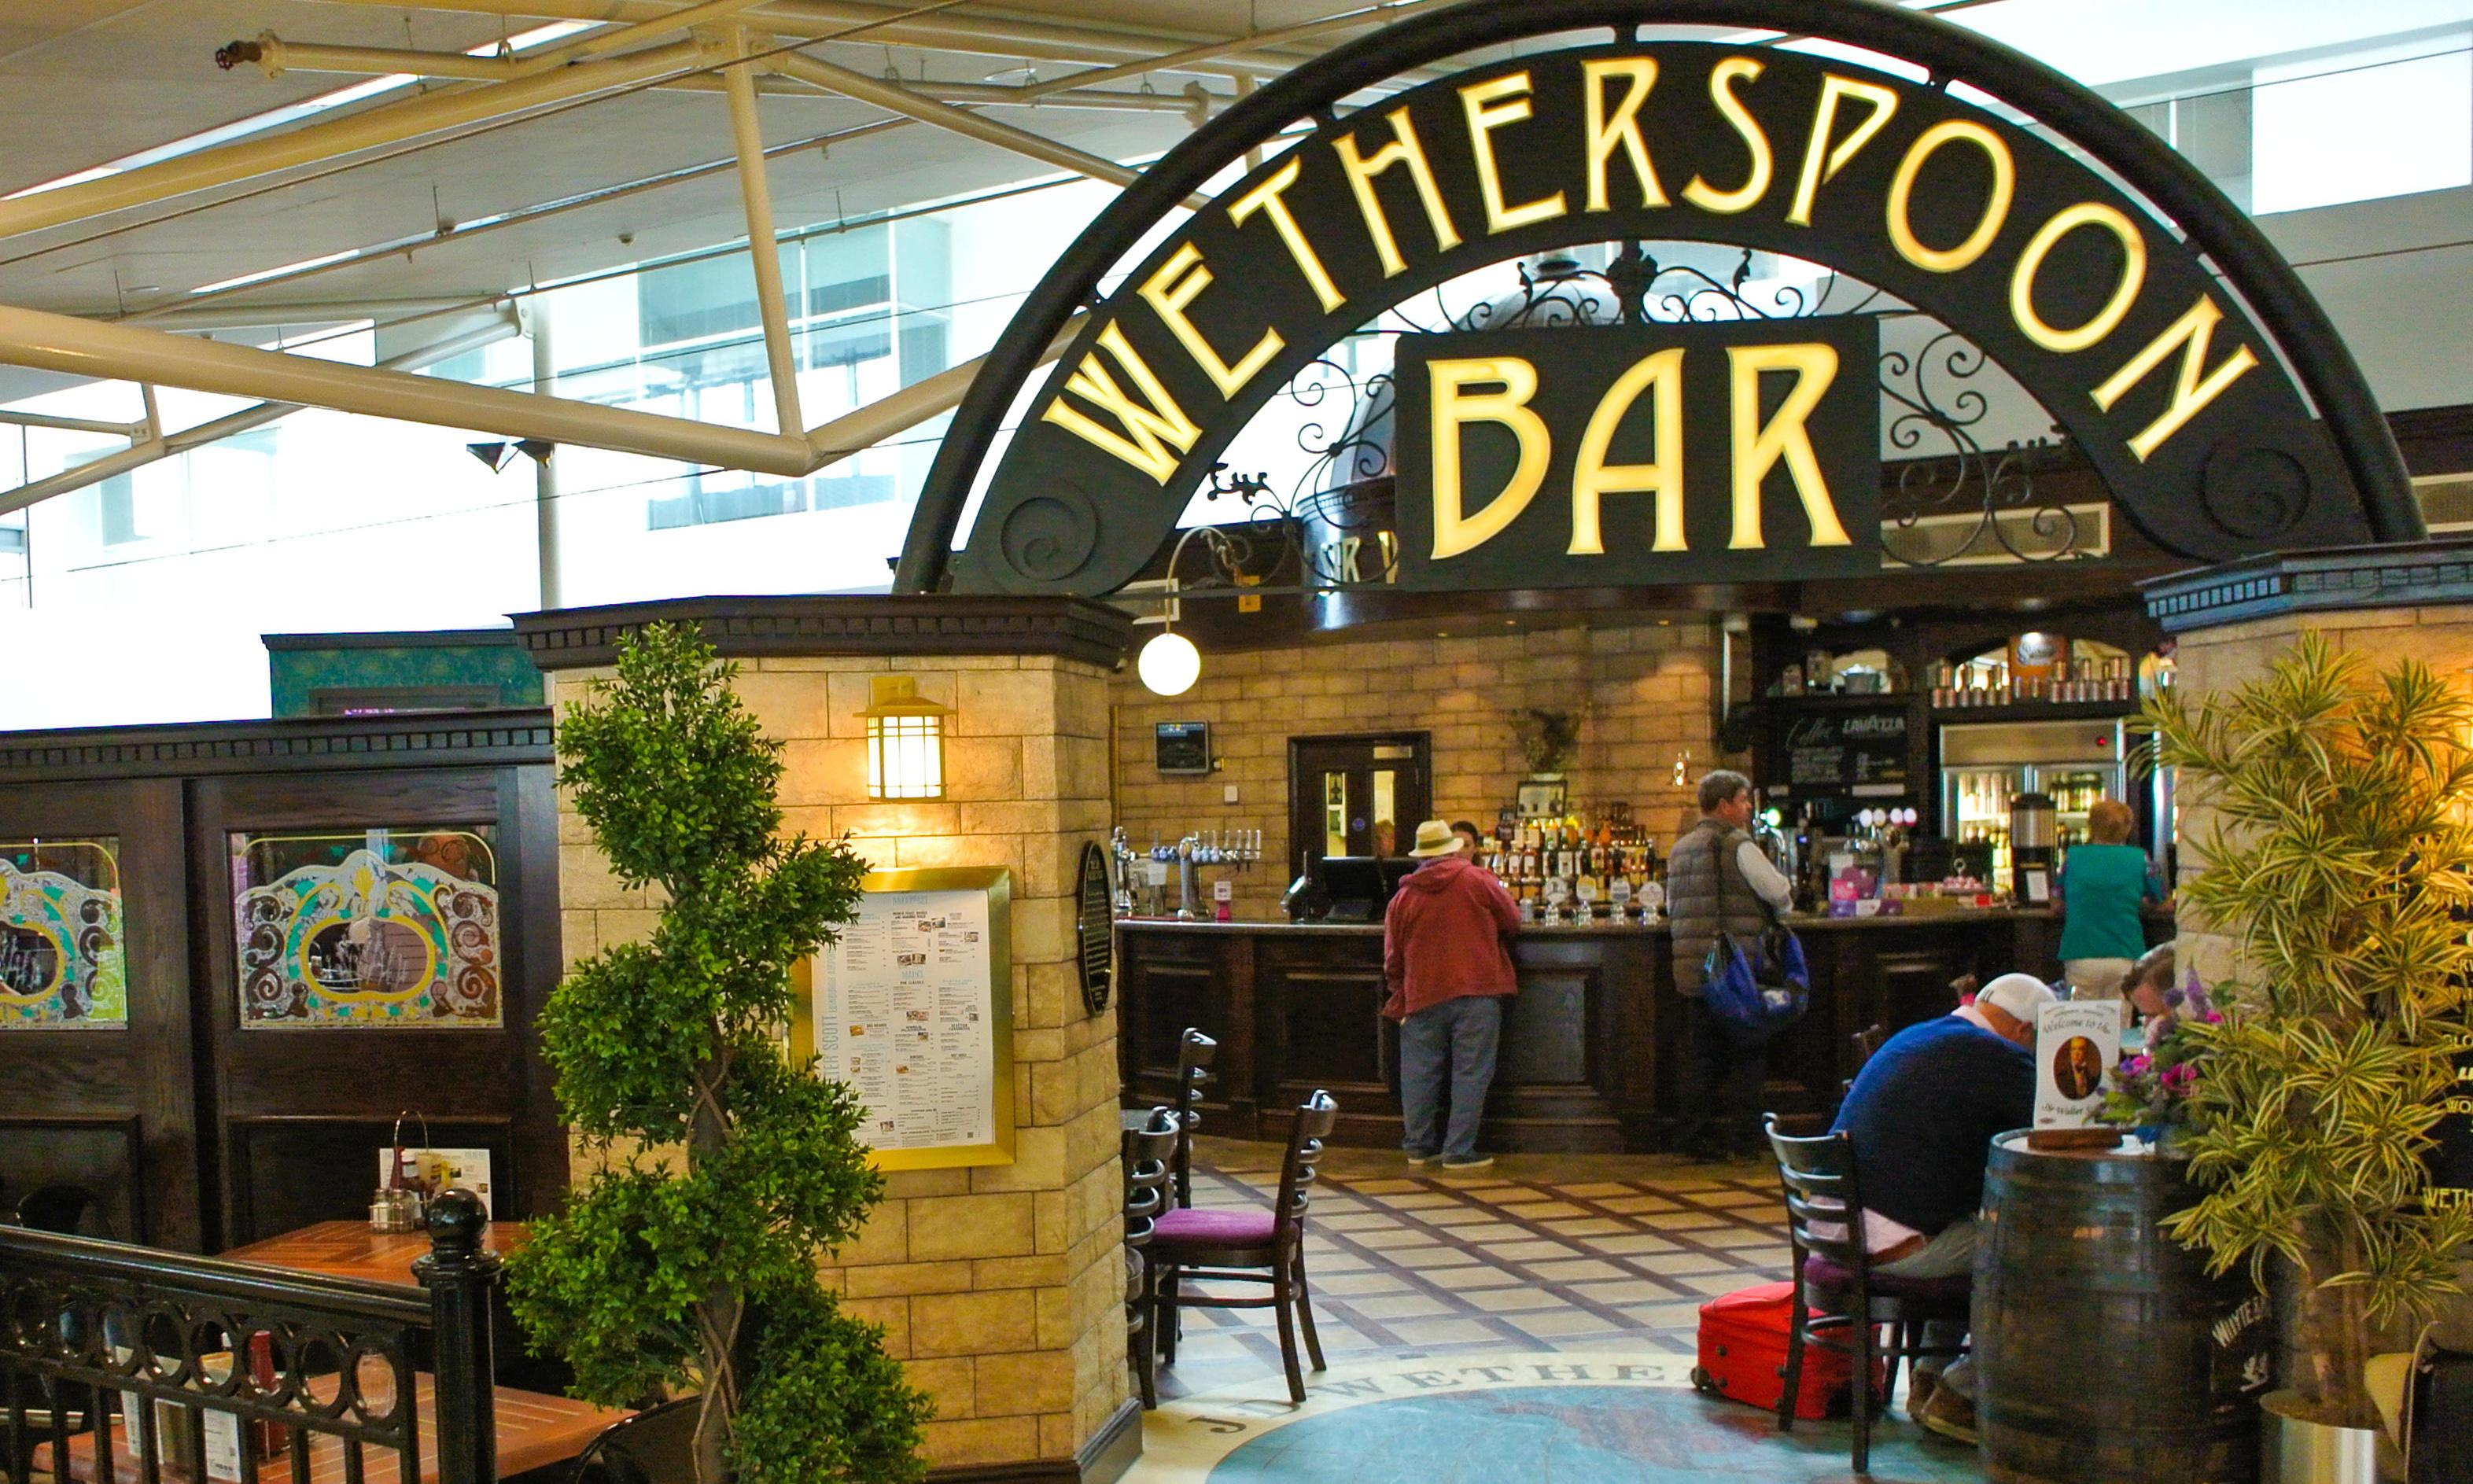 Spirits high for Wetherspoon customers as sales rise